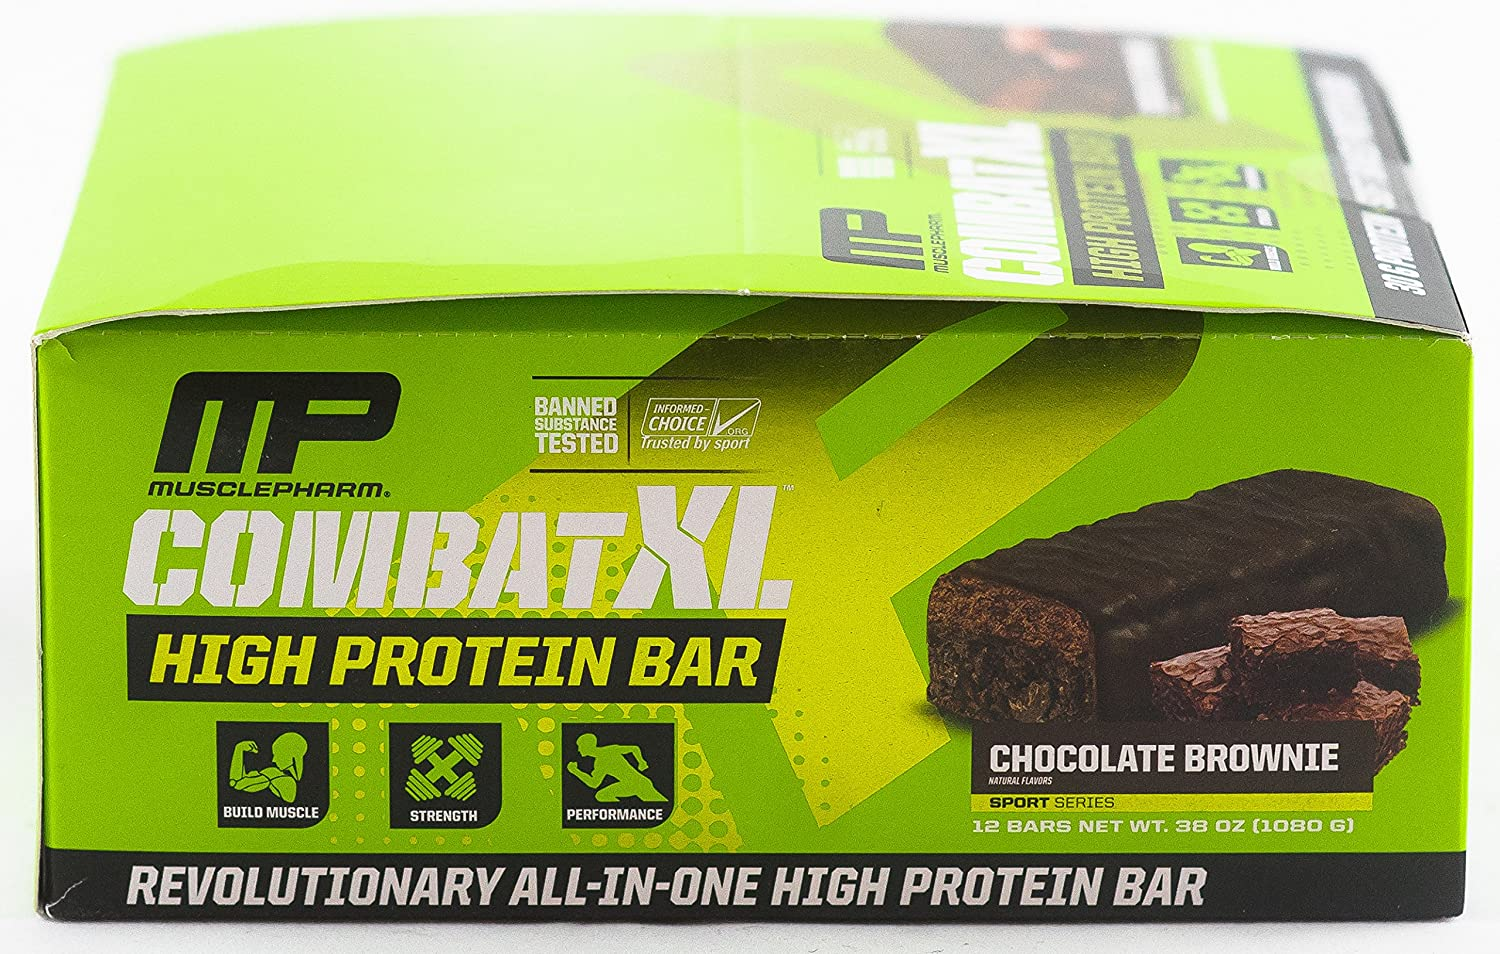 Buy MusclePharm Combat XL High Protein Bar Chocolate Brownie 12 Bars 38 Oz 1080 G Online At Low Prices In India